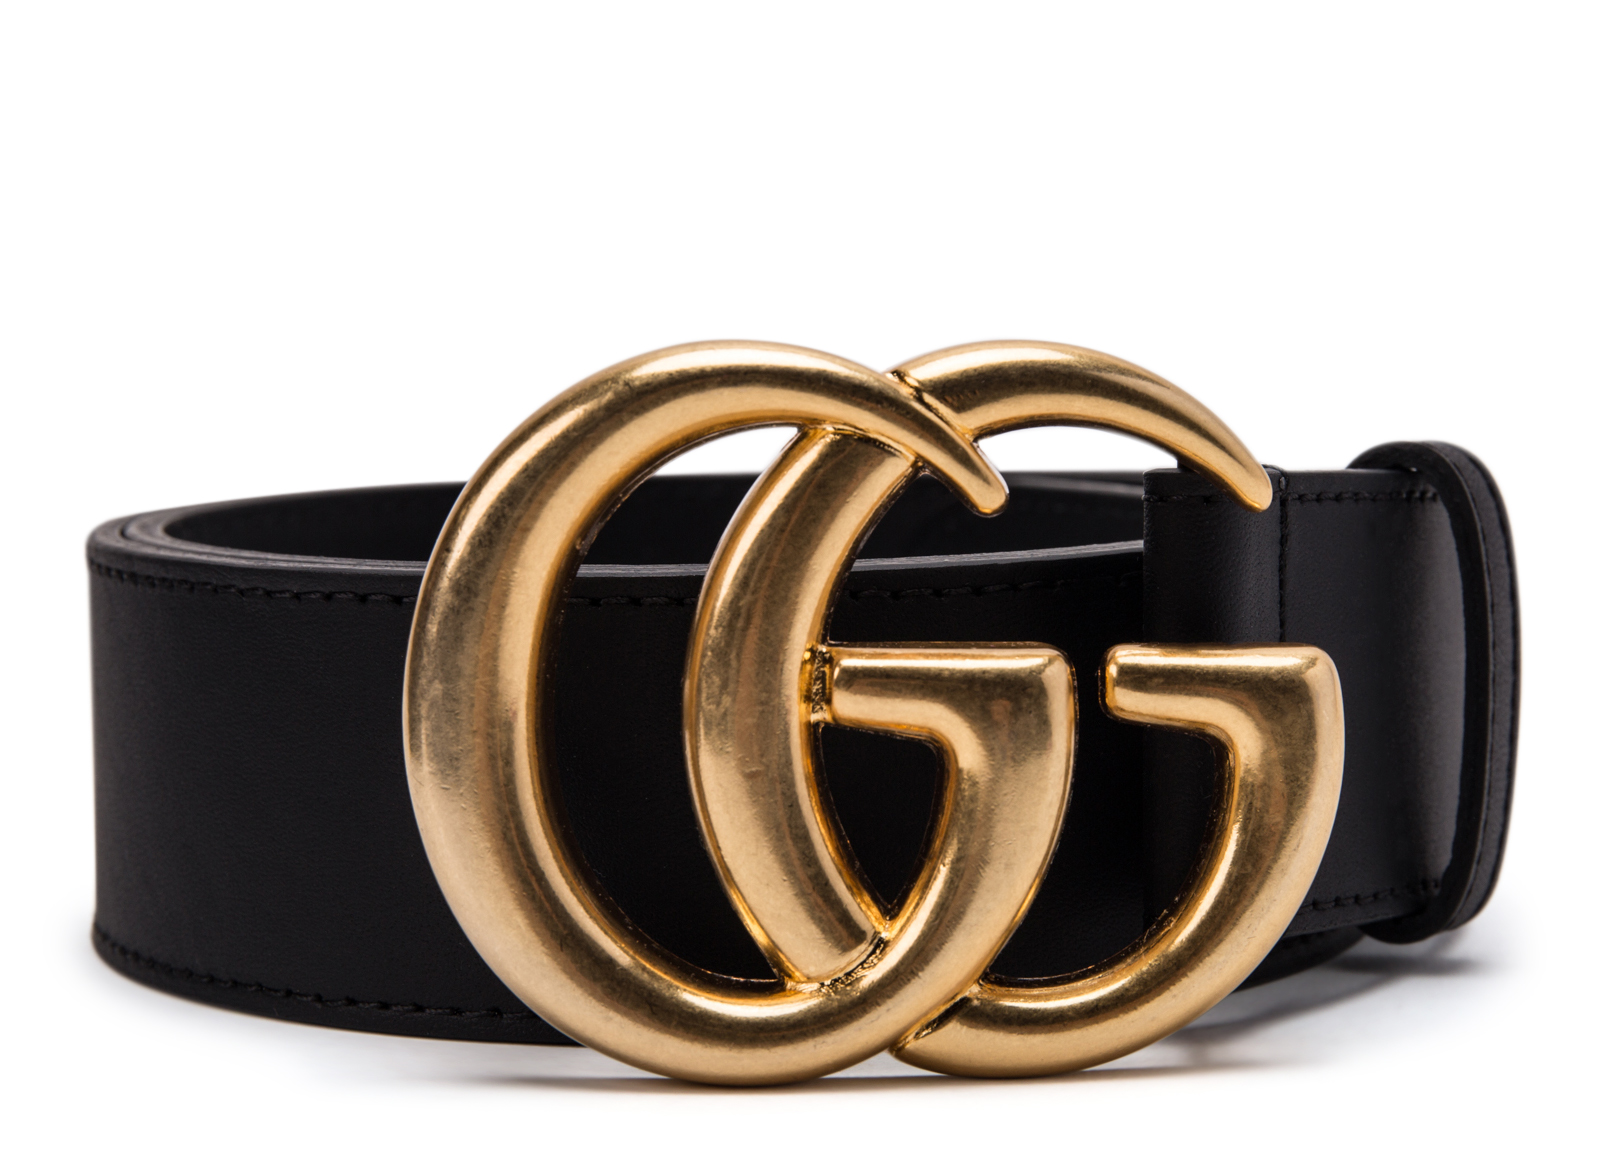 Double G Gold Buckle Textured Leather Belt 1.5 Width Black